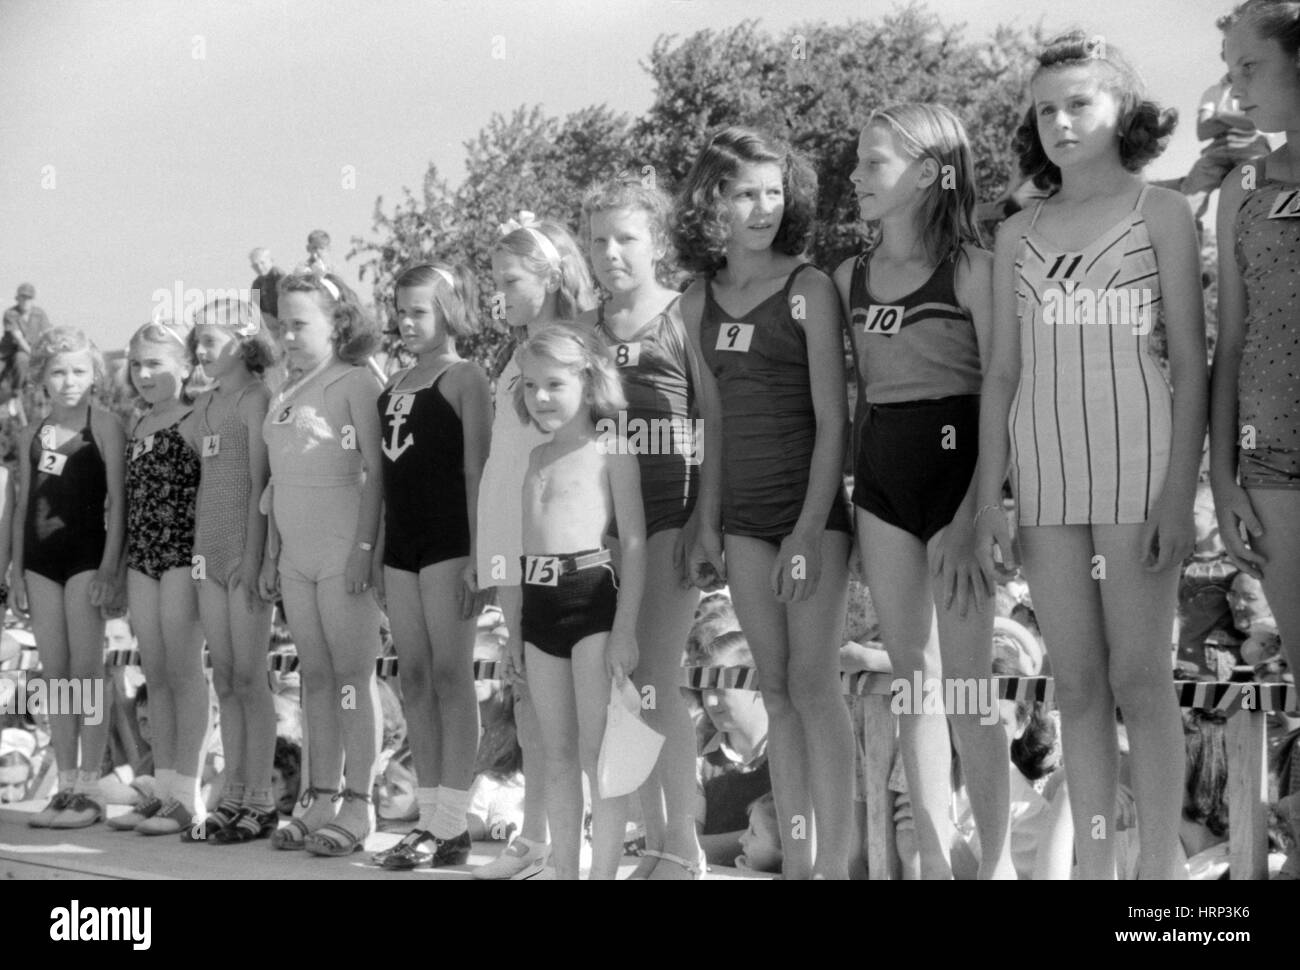 Junior Entries, July 4th Beauty Contest, 1940 - Stock Image